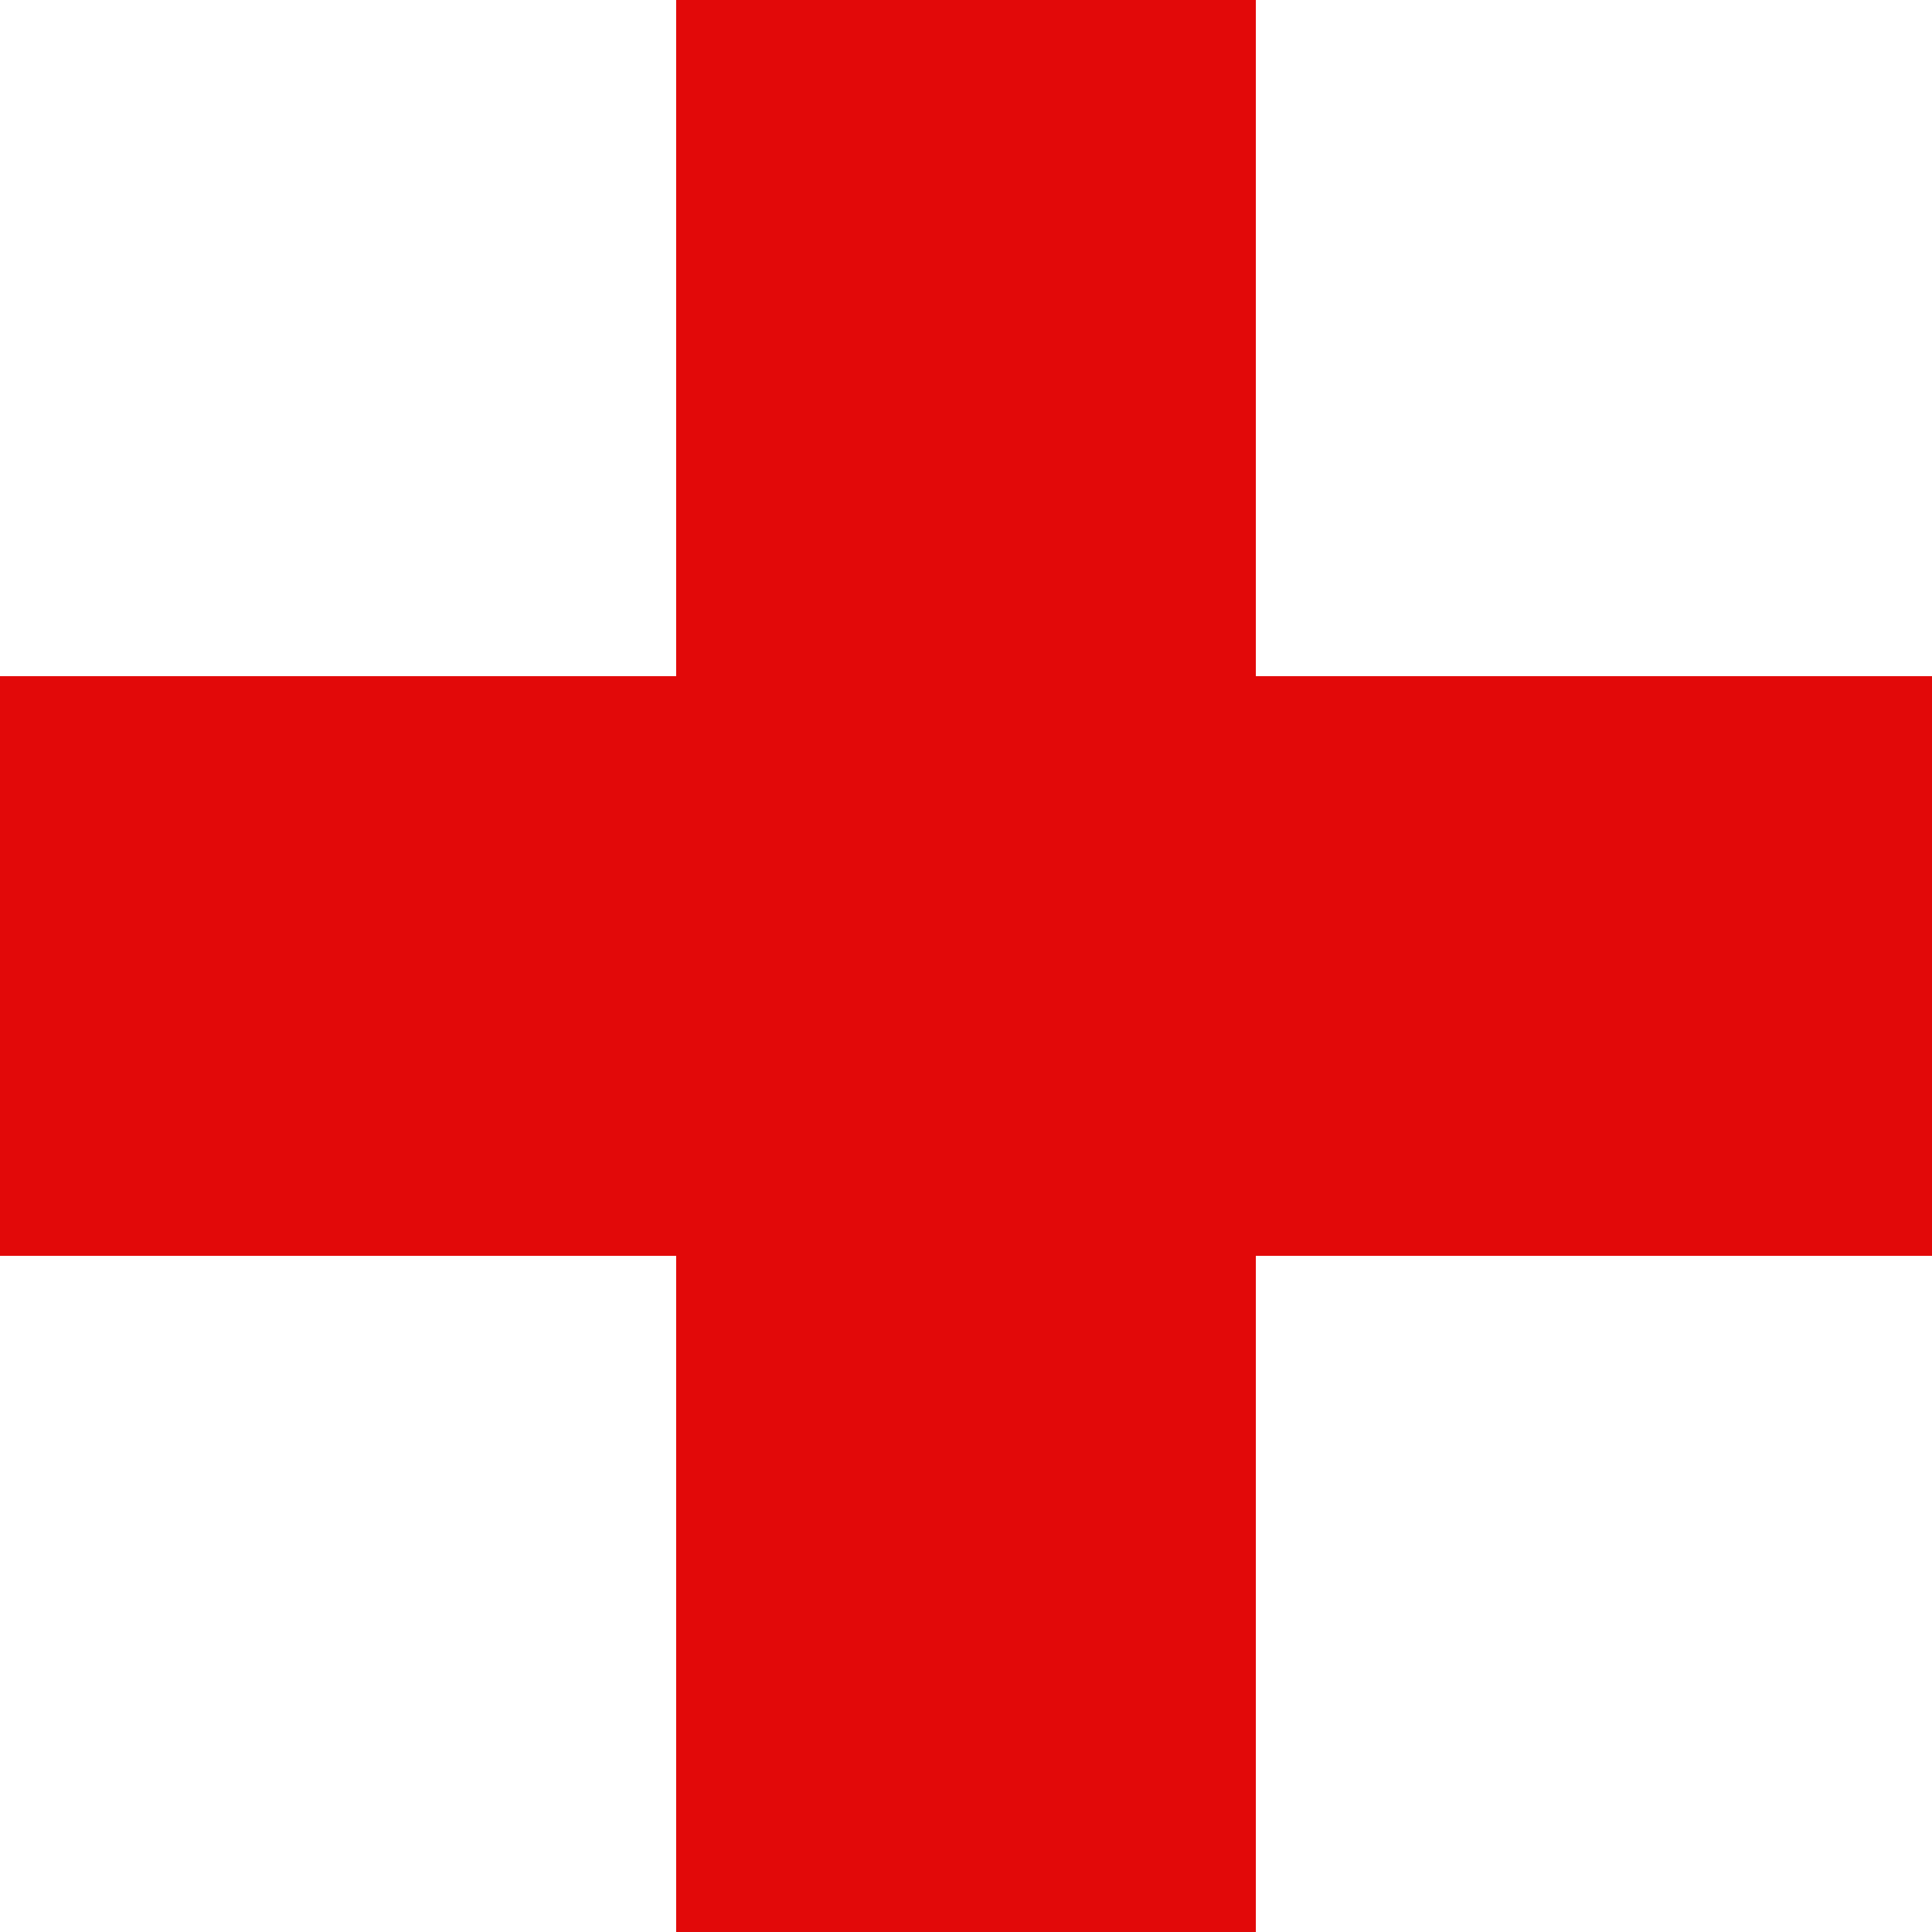 Red Cross clipart svg Wikimedia Open Badge Croix svg